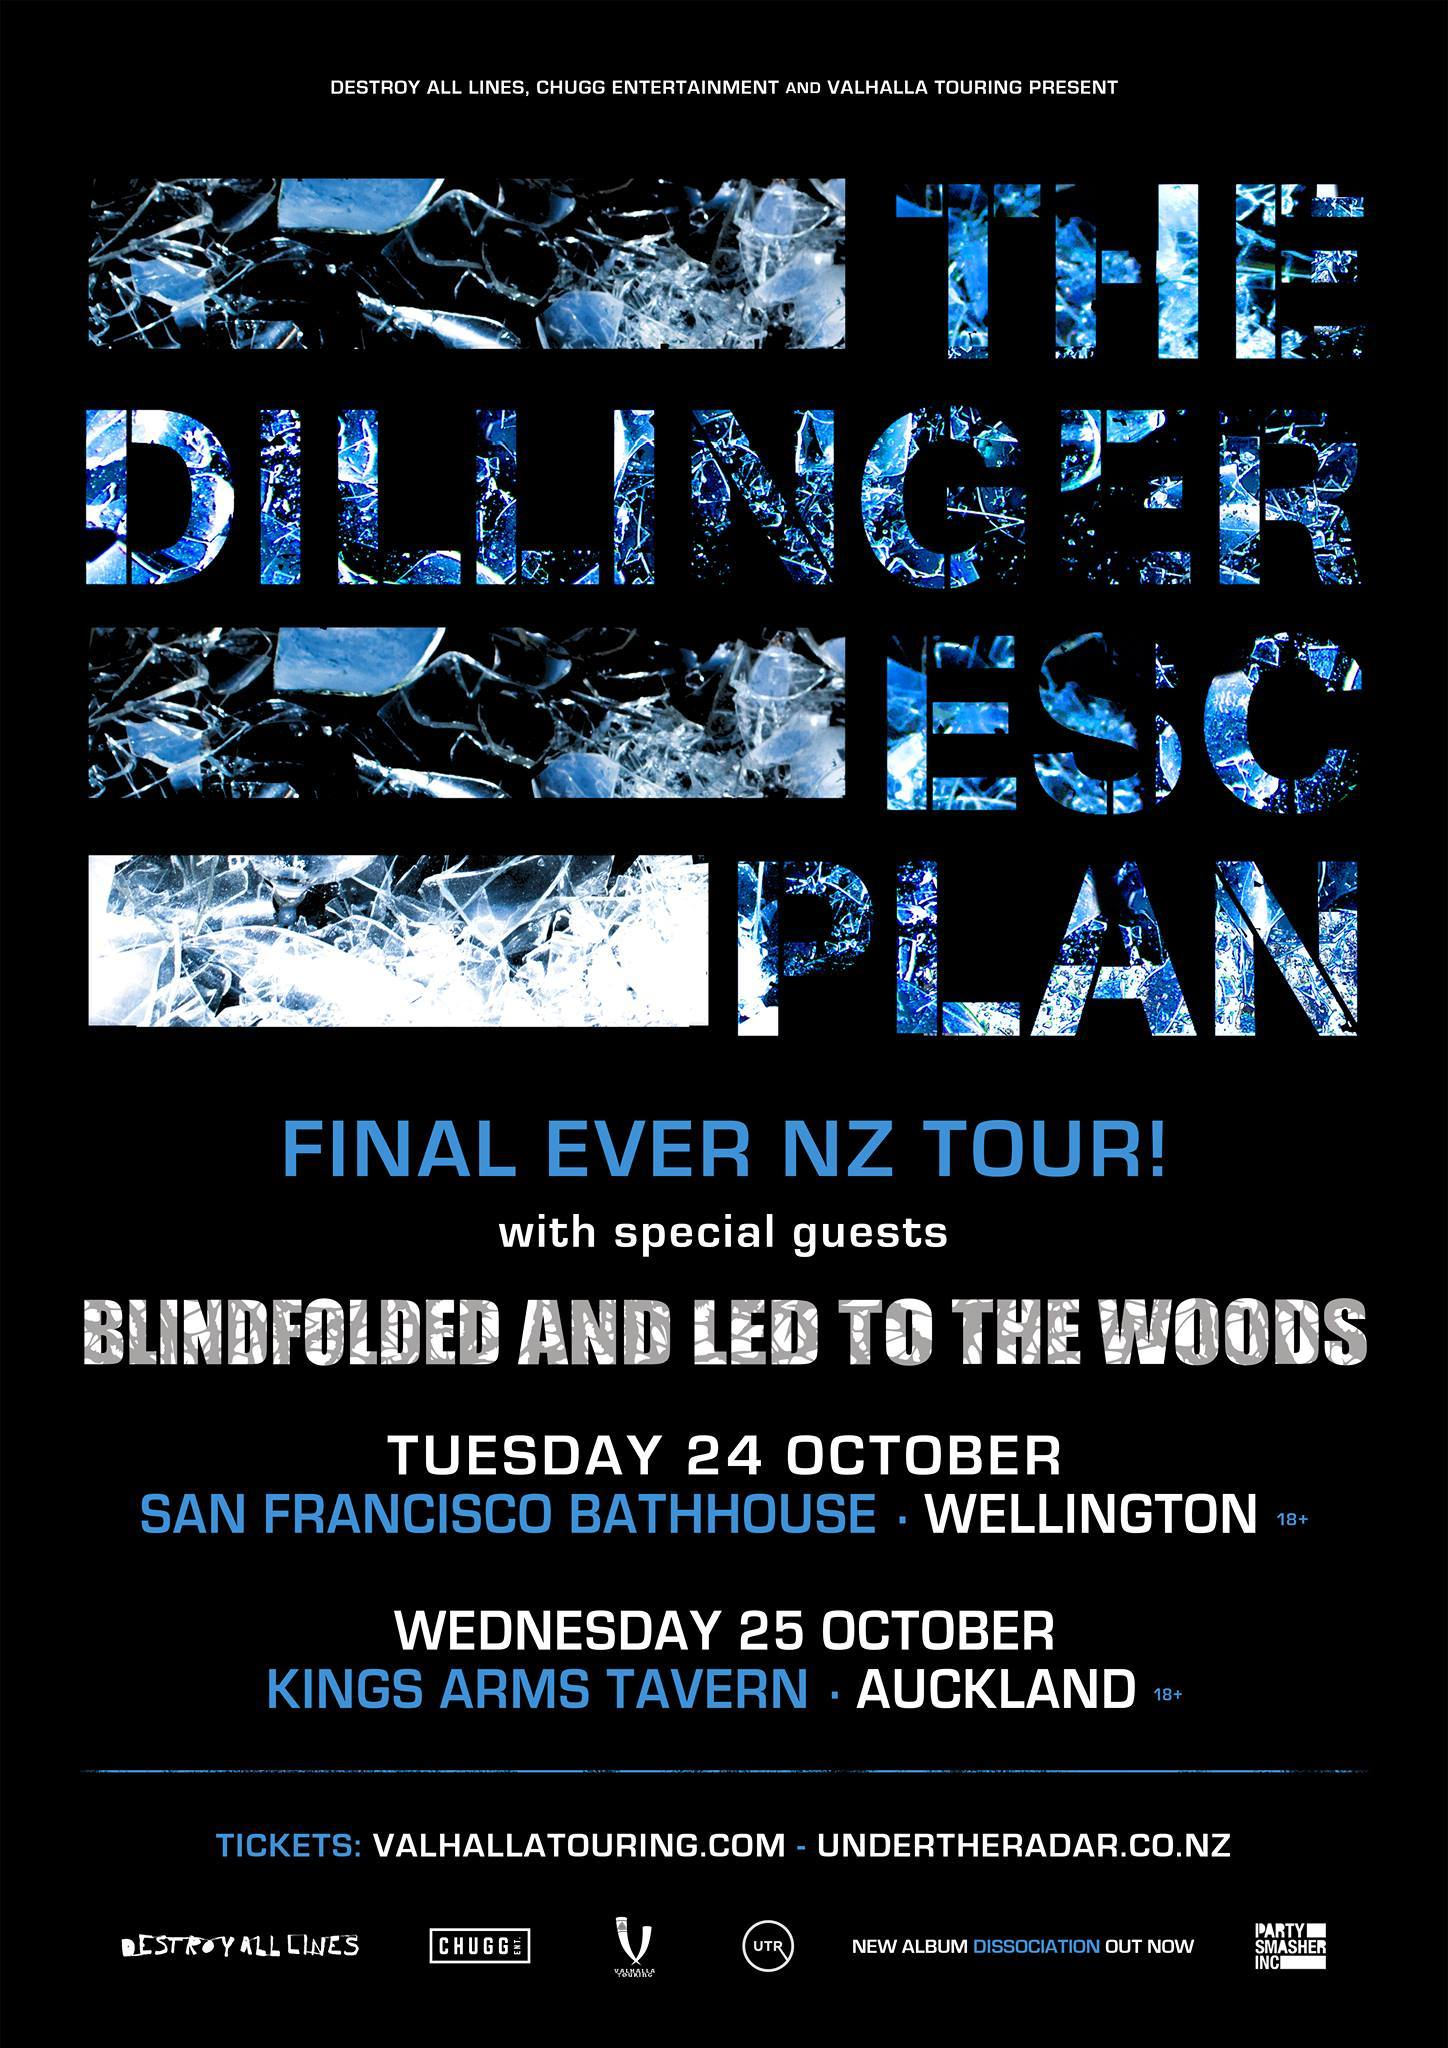 Dillinger Escape Plan - Blindfolded And Led To The Woods